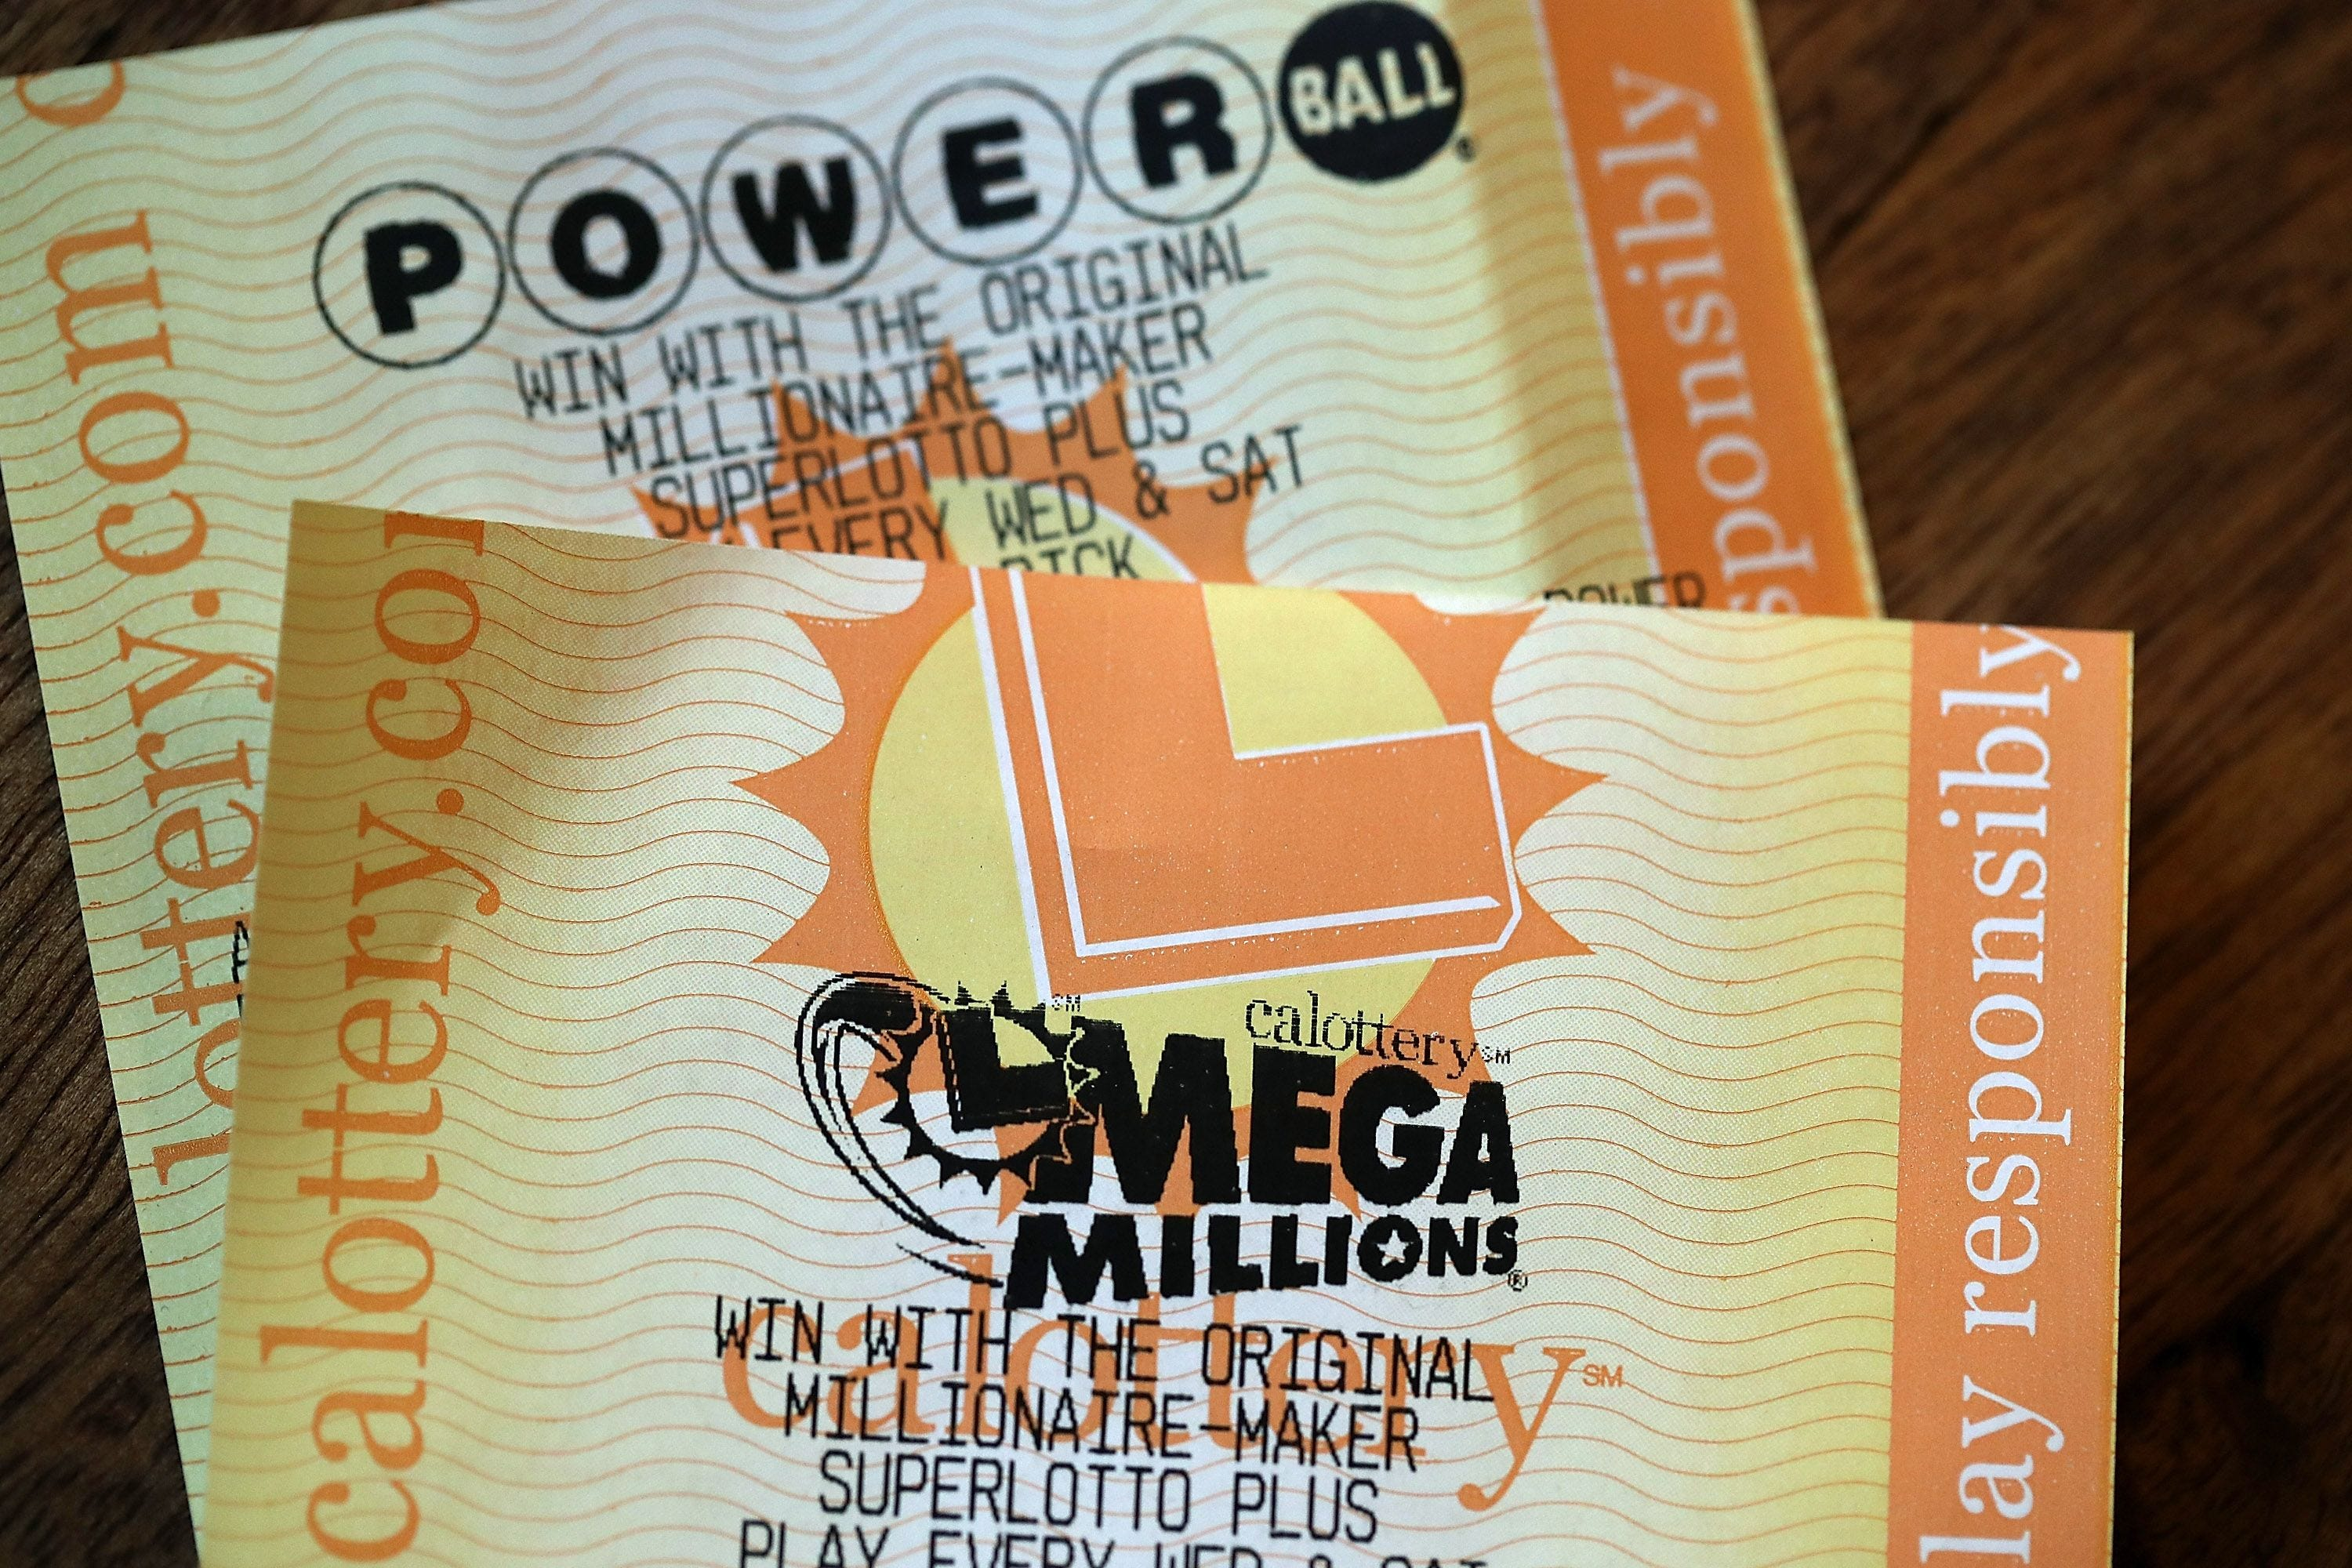 Stars lottery 2018 prizes for powerball